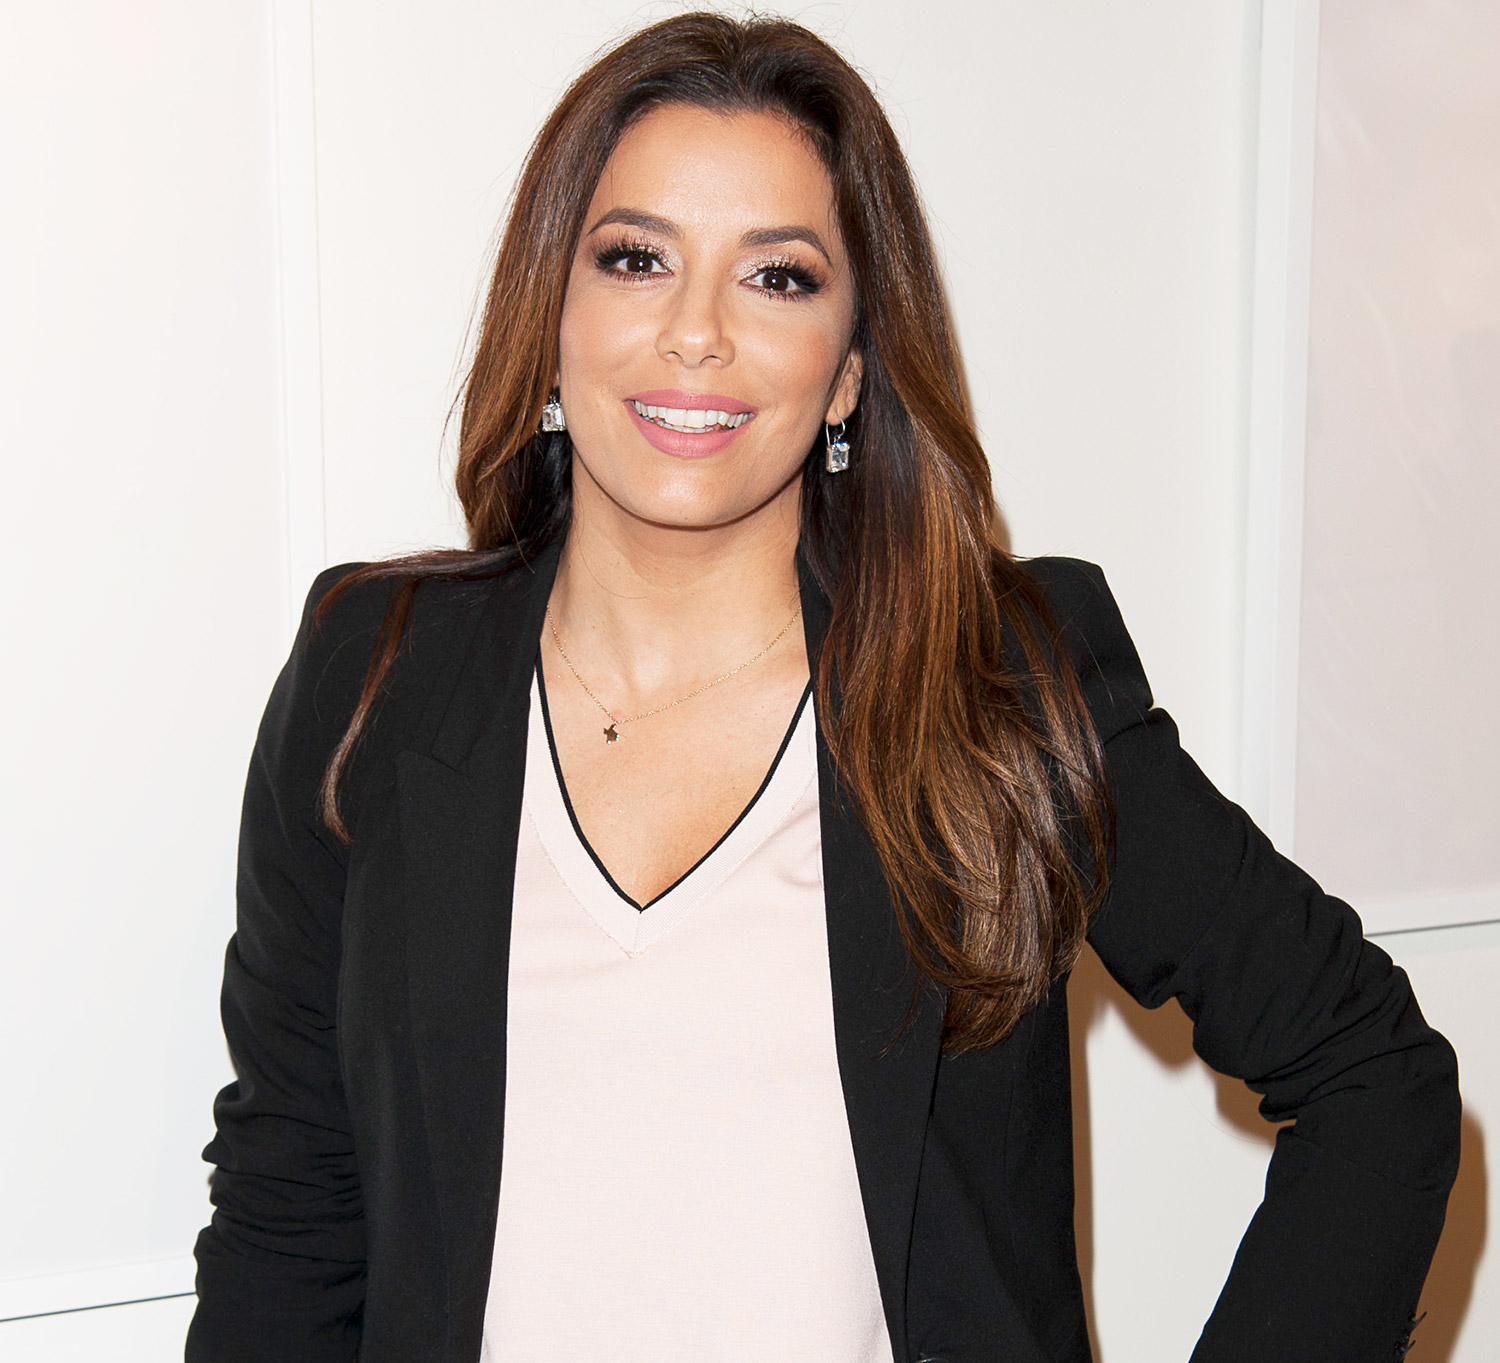 42-year-old Eva Longoria was wearing a sexy black suit for a photo shoot 02.08.2017 80